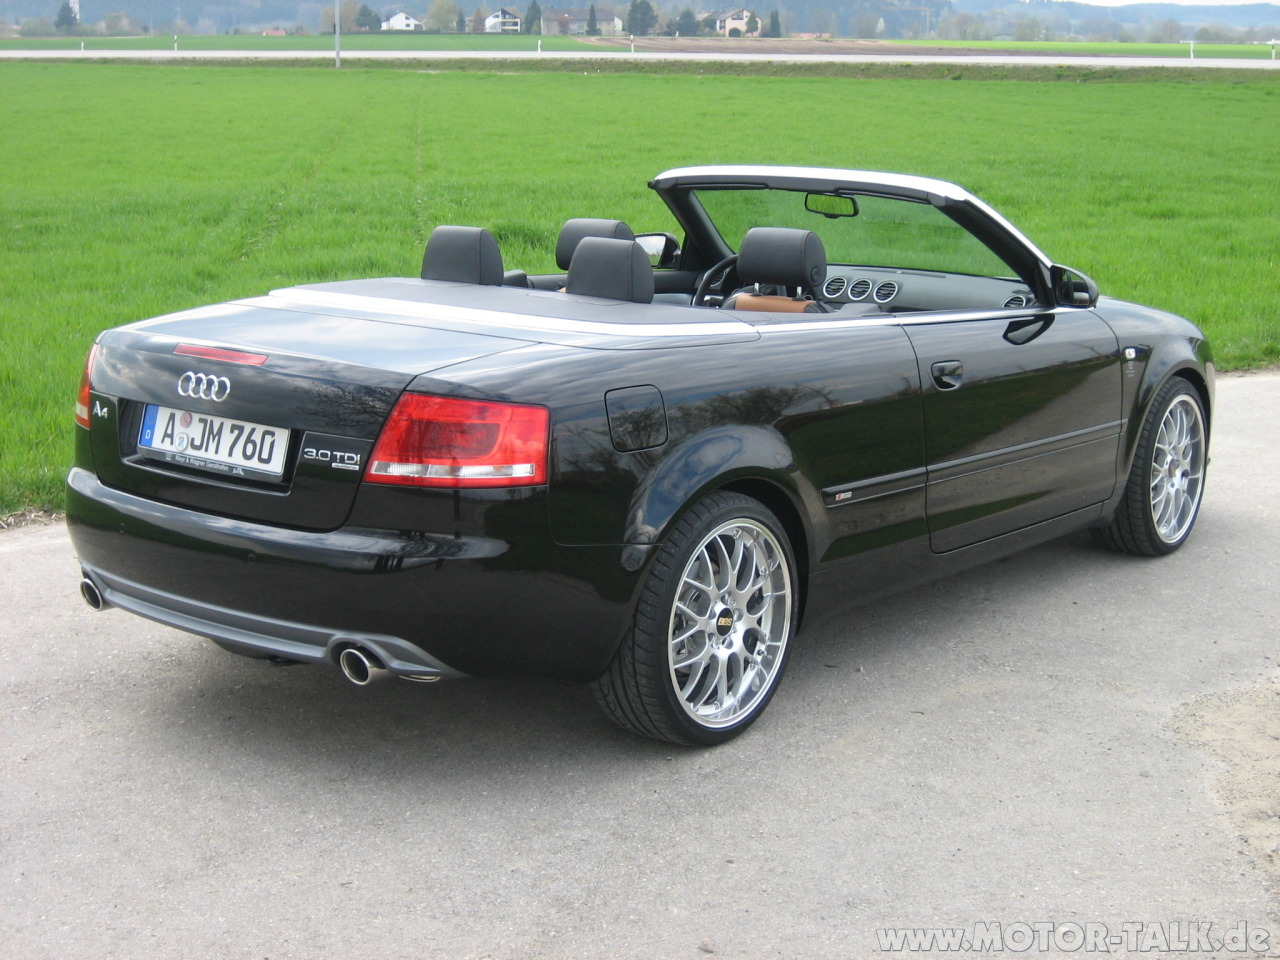 audi a4 b7 8h cabriolet 3 0 tdi quattro 17155. Black Bedroom Furniture Sets. Home Design Ideas